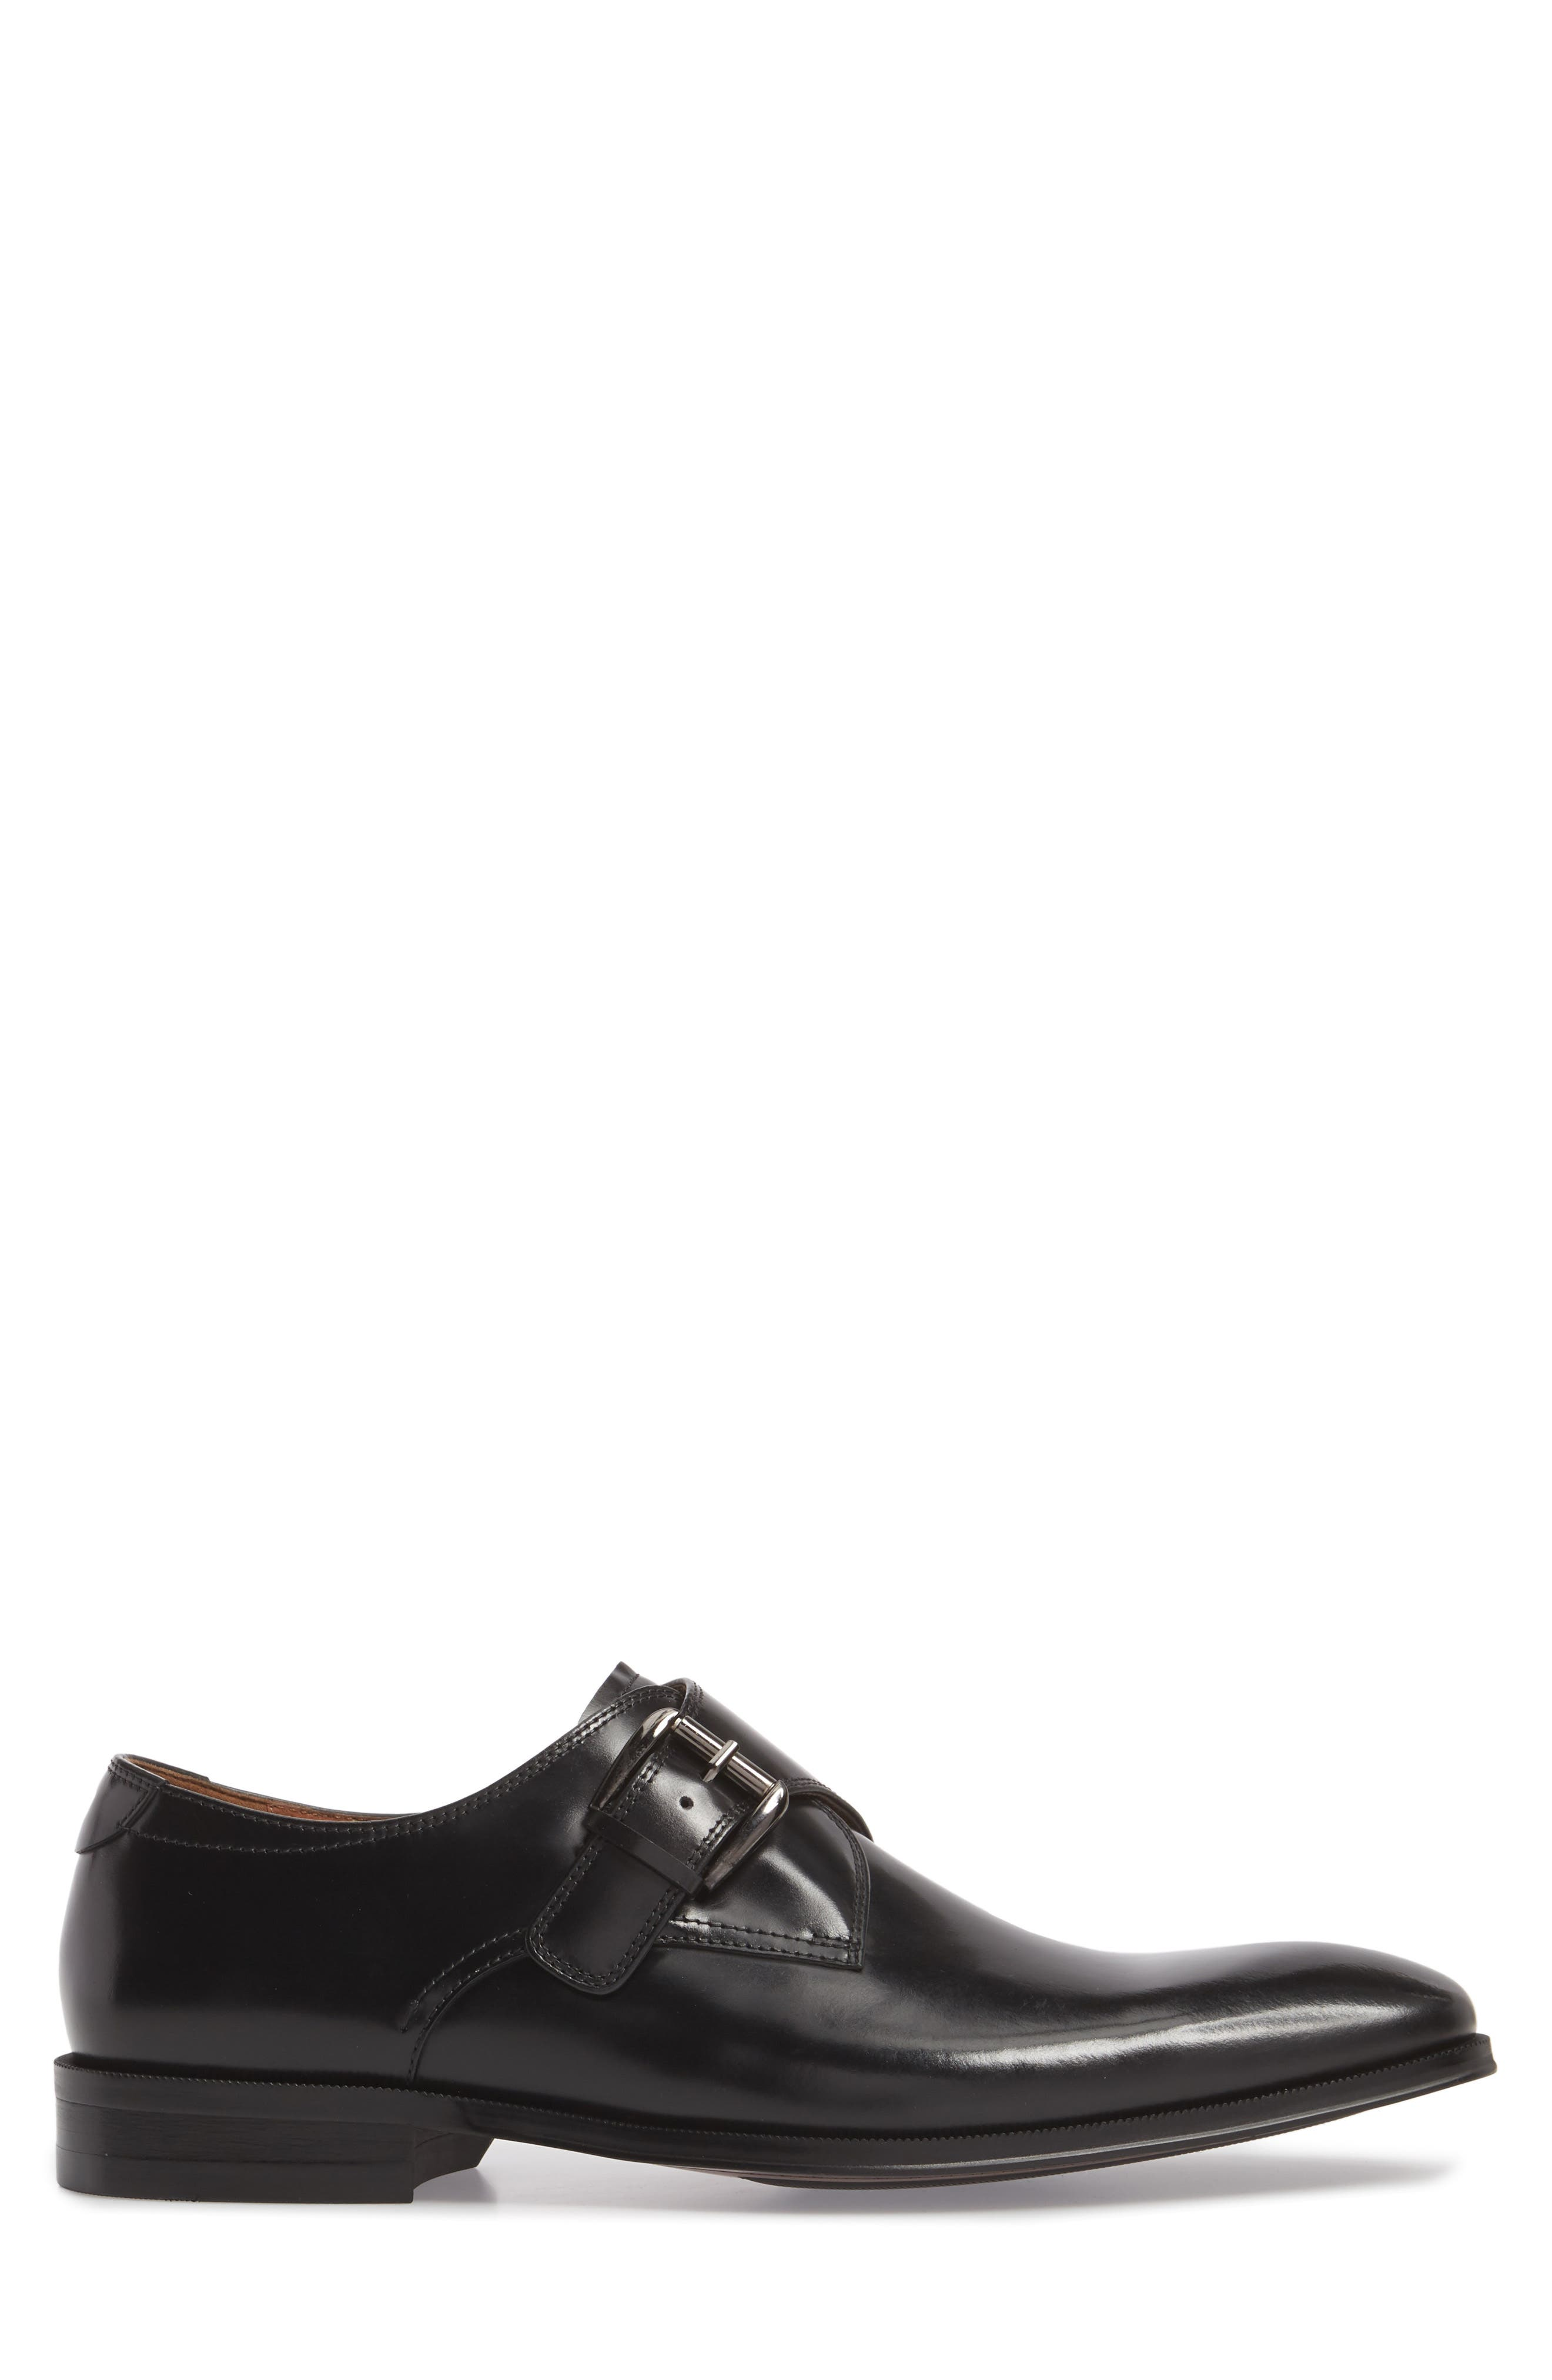 Belfast Single Strap Monk Shoe,                             Alternate thumbnail 3, color,                             BLACK LEATHER